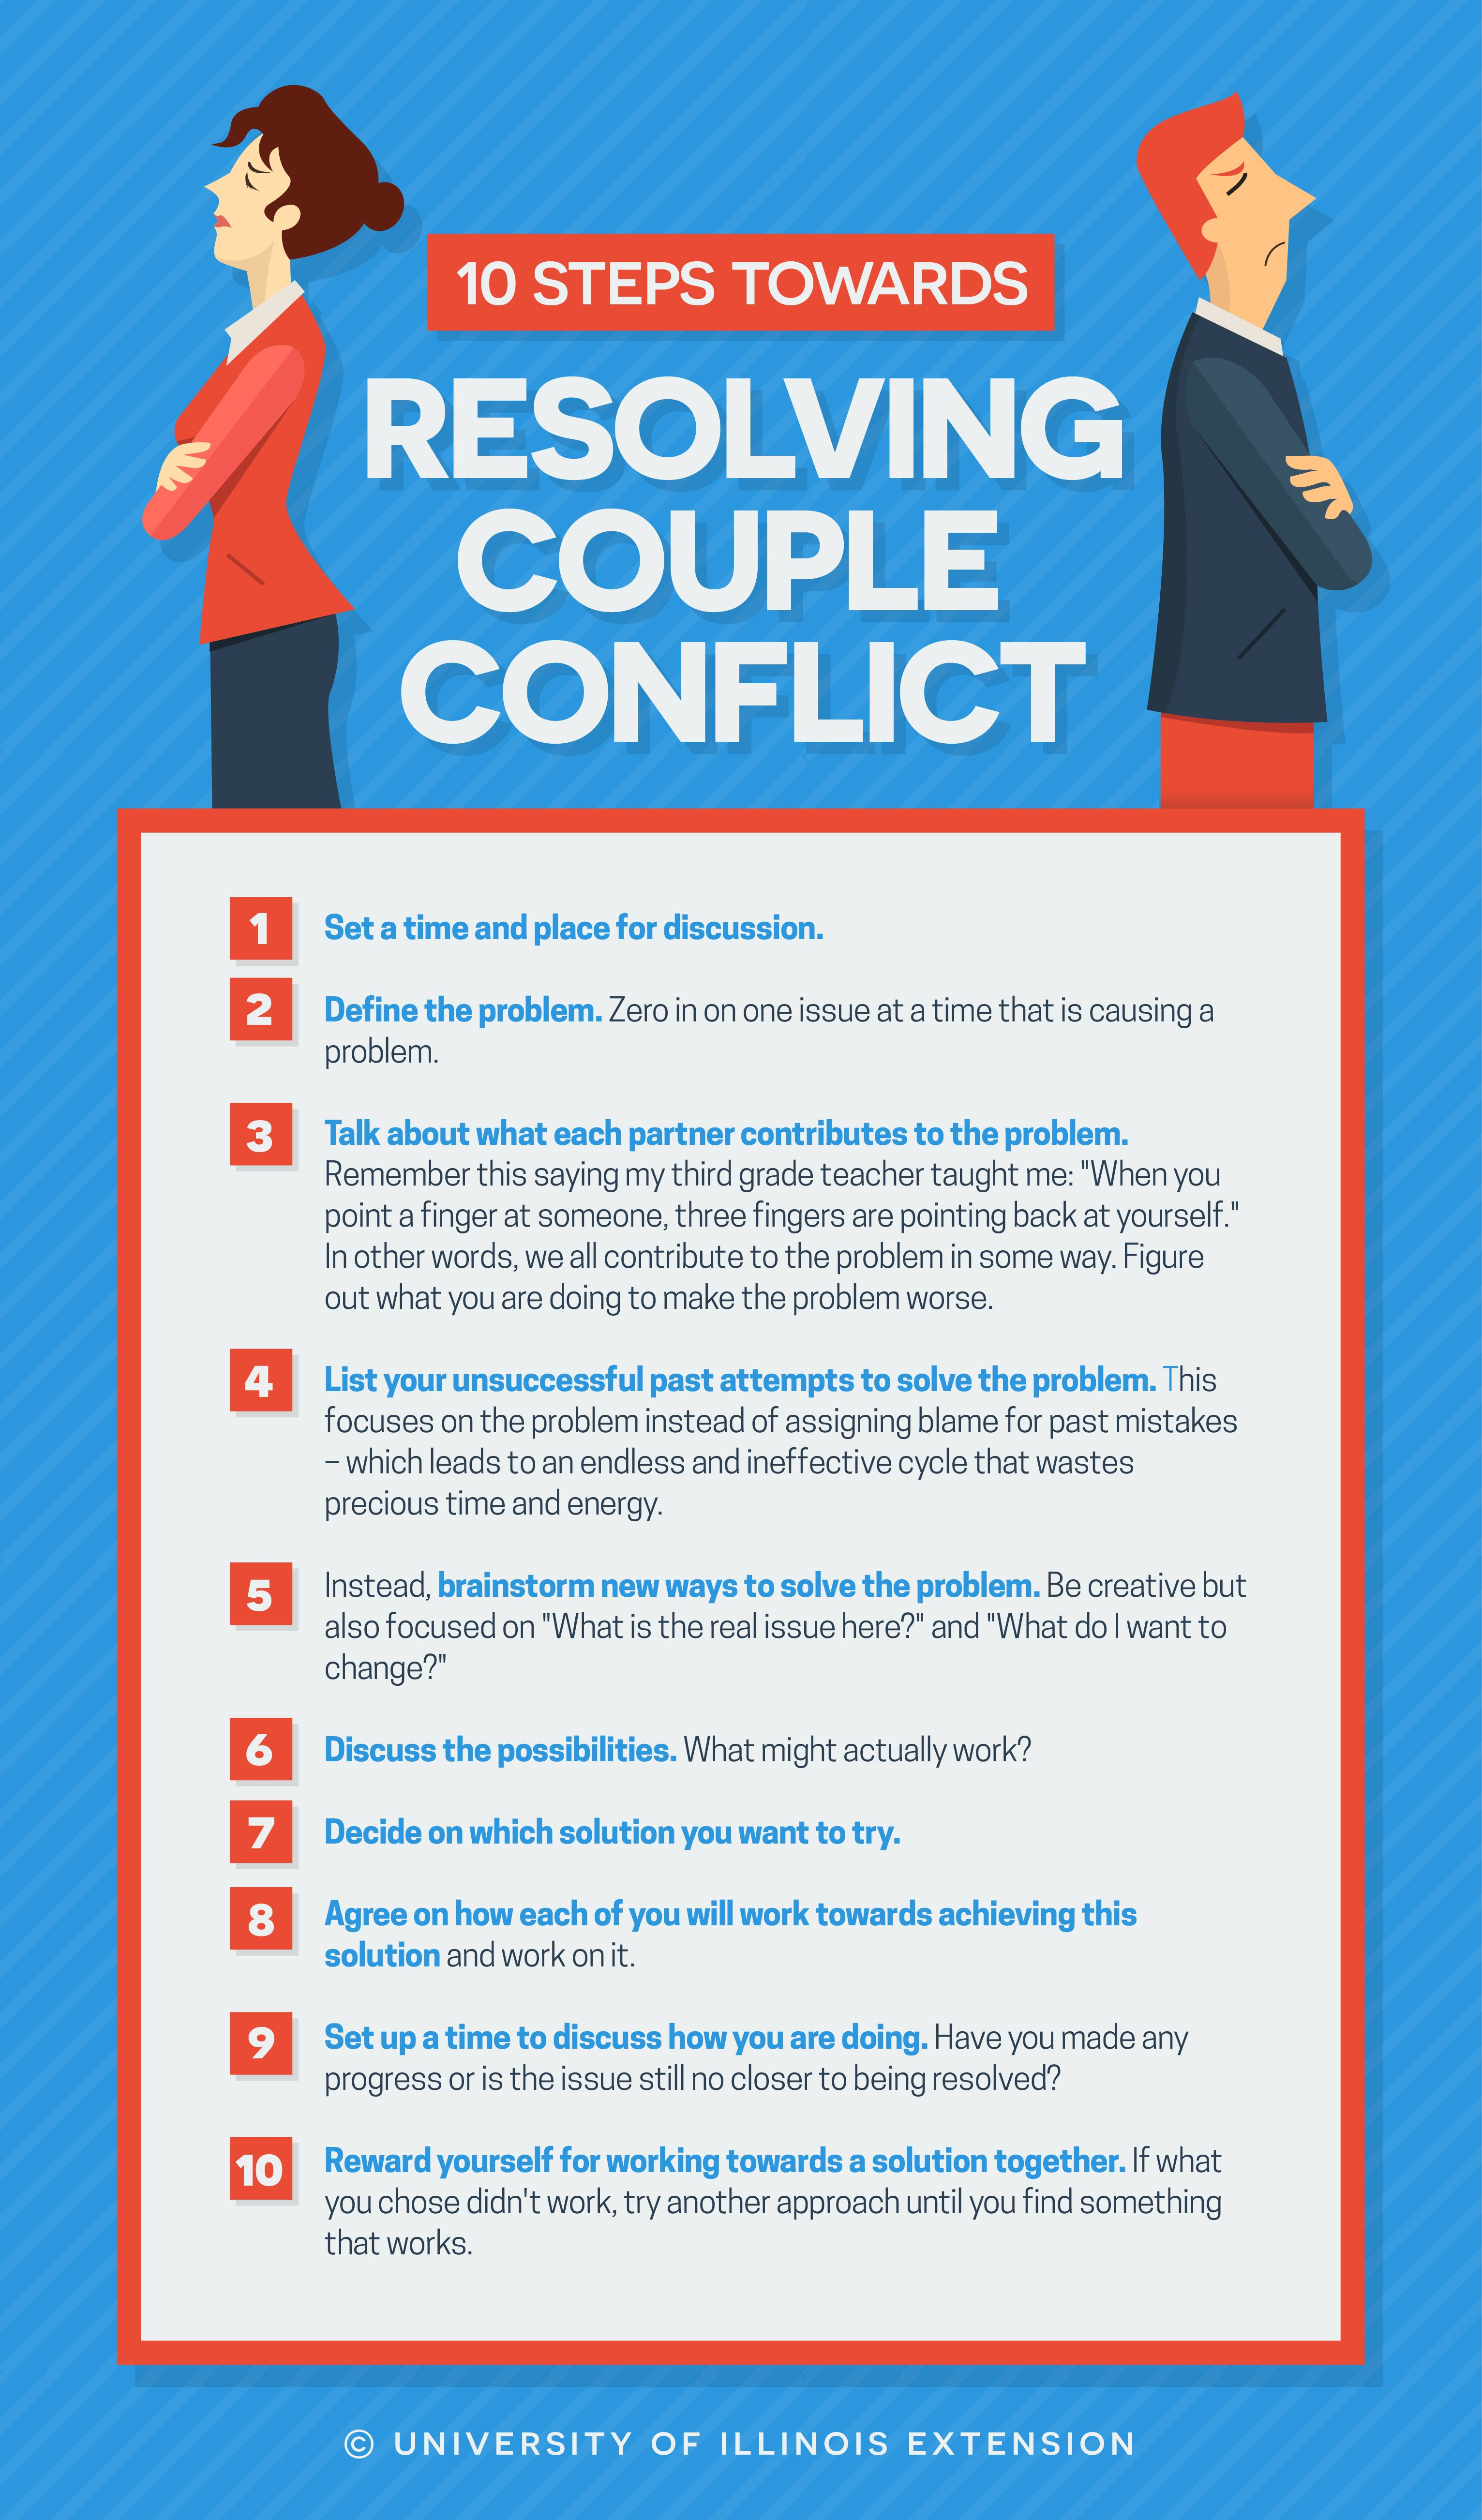 10 Steps Towards Resolving Couple Conflict Tips